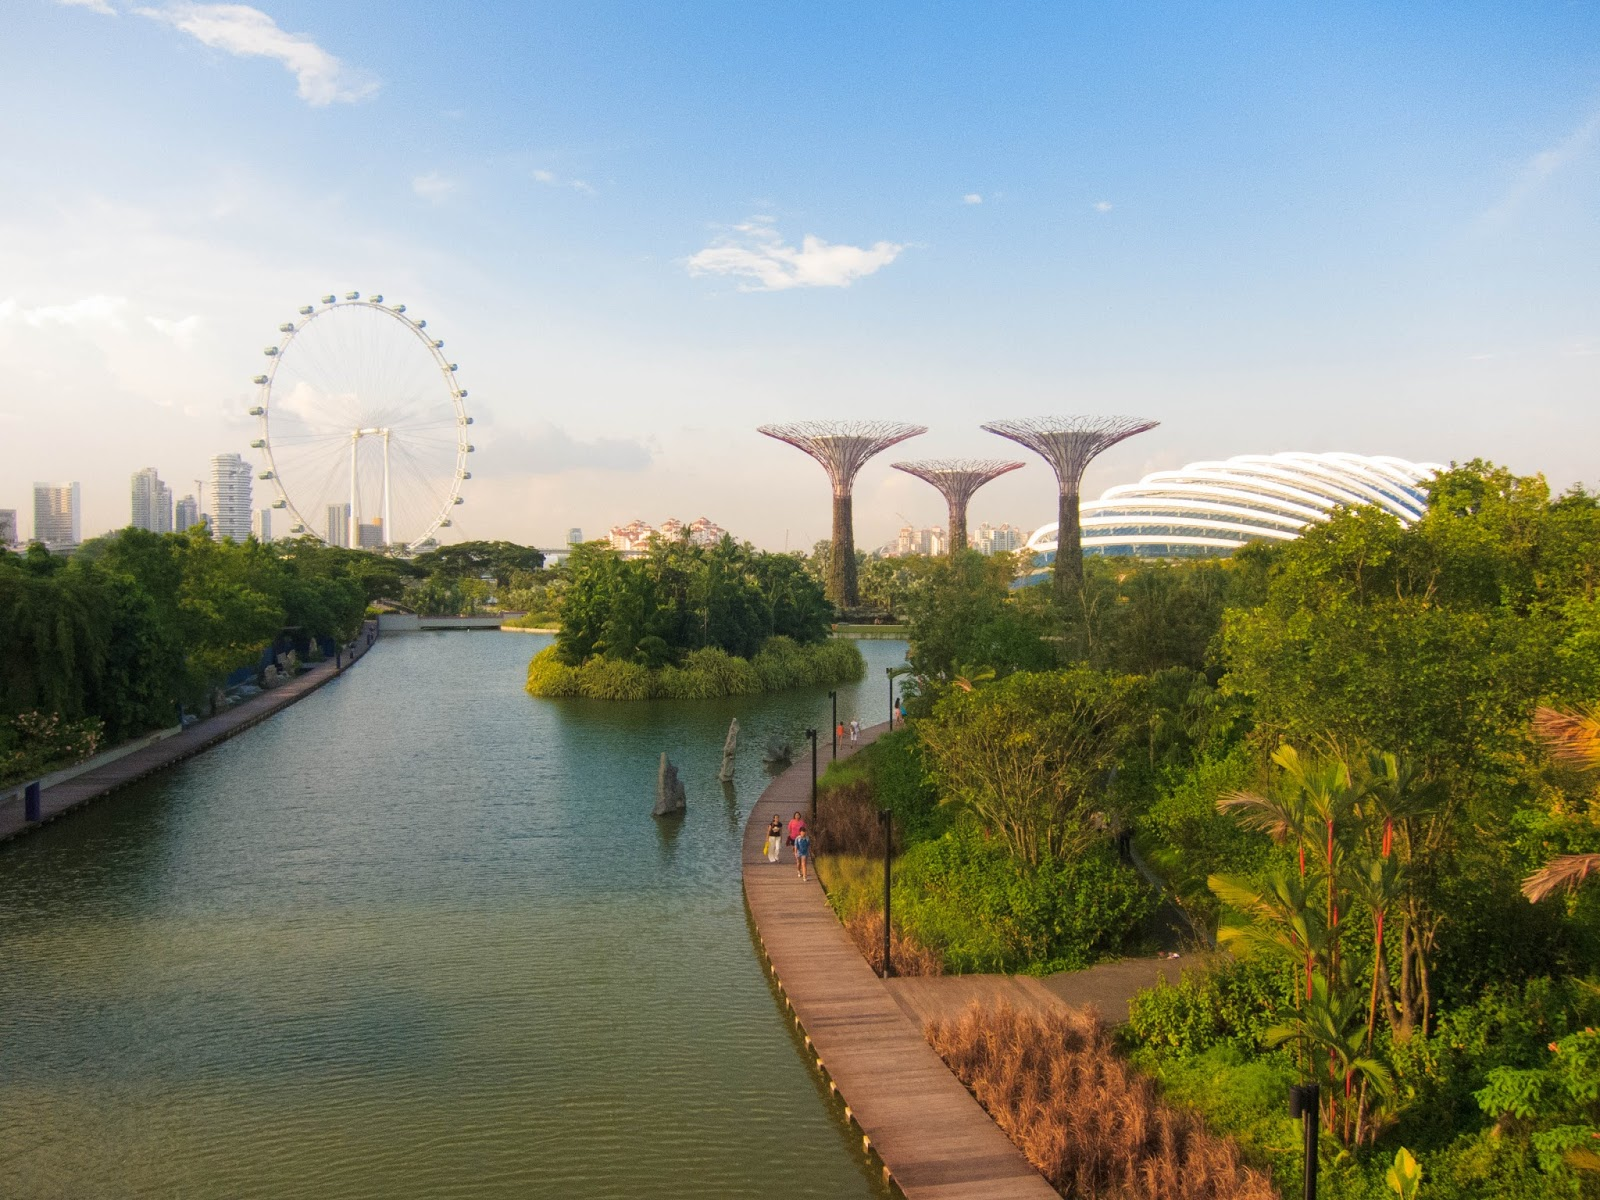 Singapore Flyer and view over Gardens by the Bay | Svelte Salivations - Travel